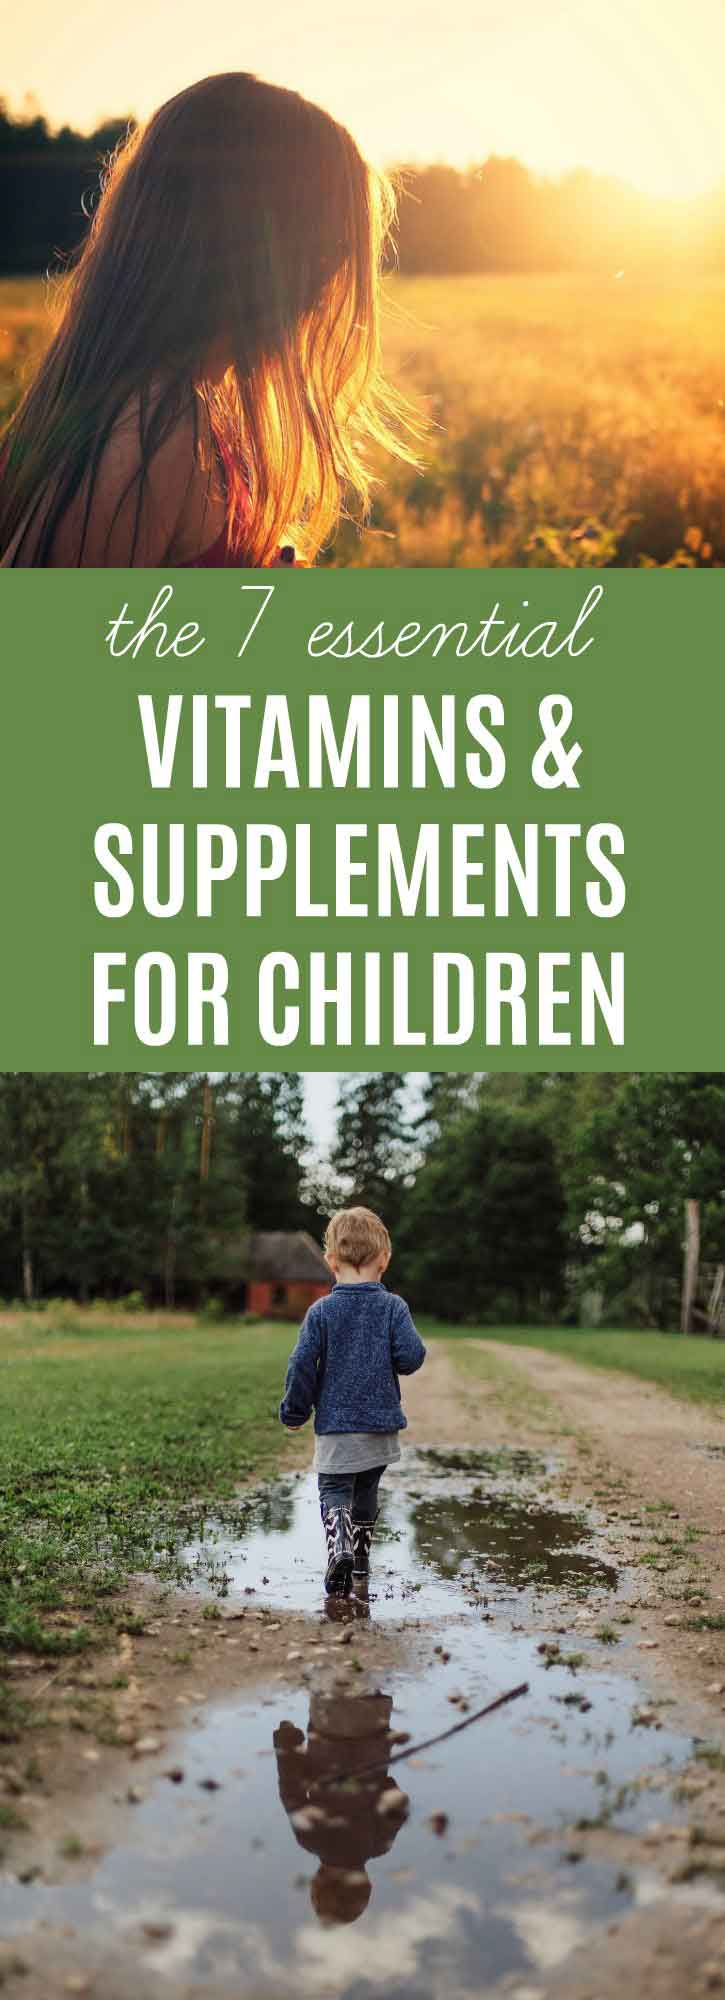 The 7 Best Vitamins & Supplements for Children | thenourishedfamily.com